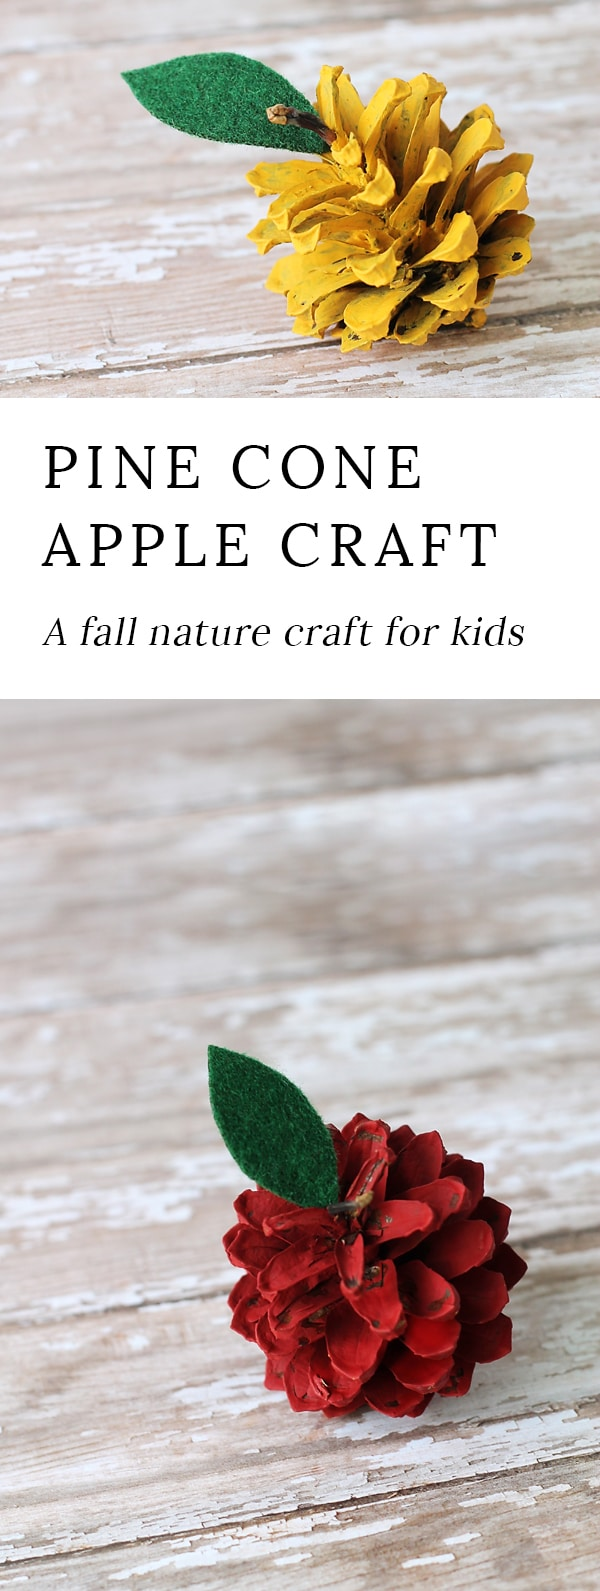 Kids of all ages will enjoy making rustic pine cone apples. They are a creative, colorful fall nature craft for kids!